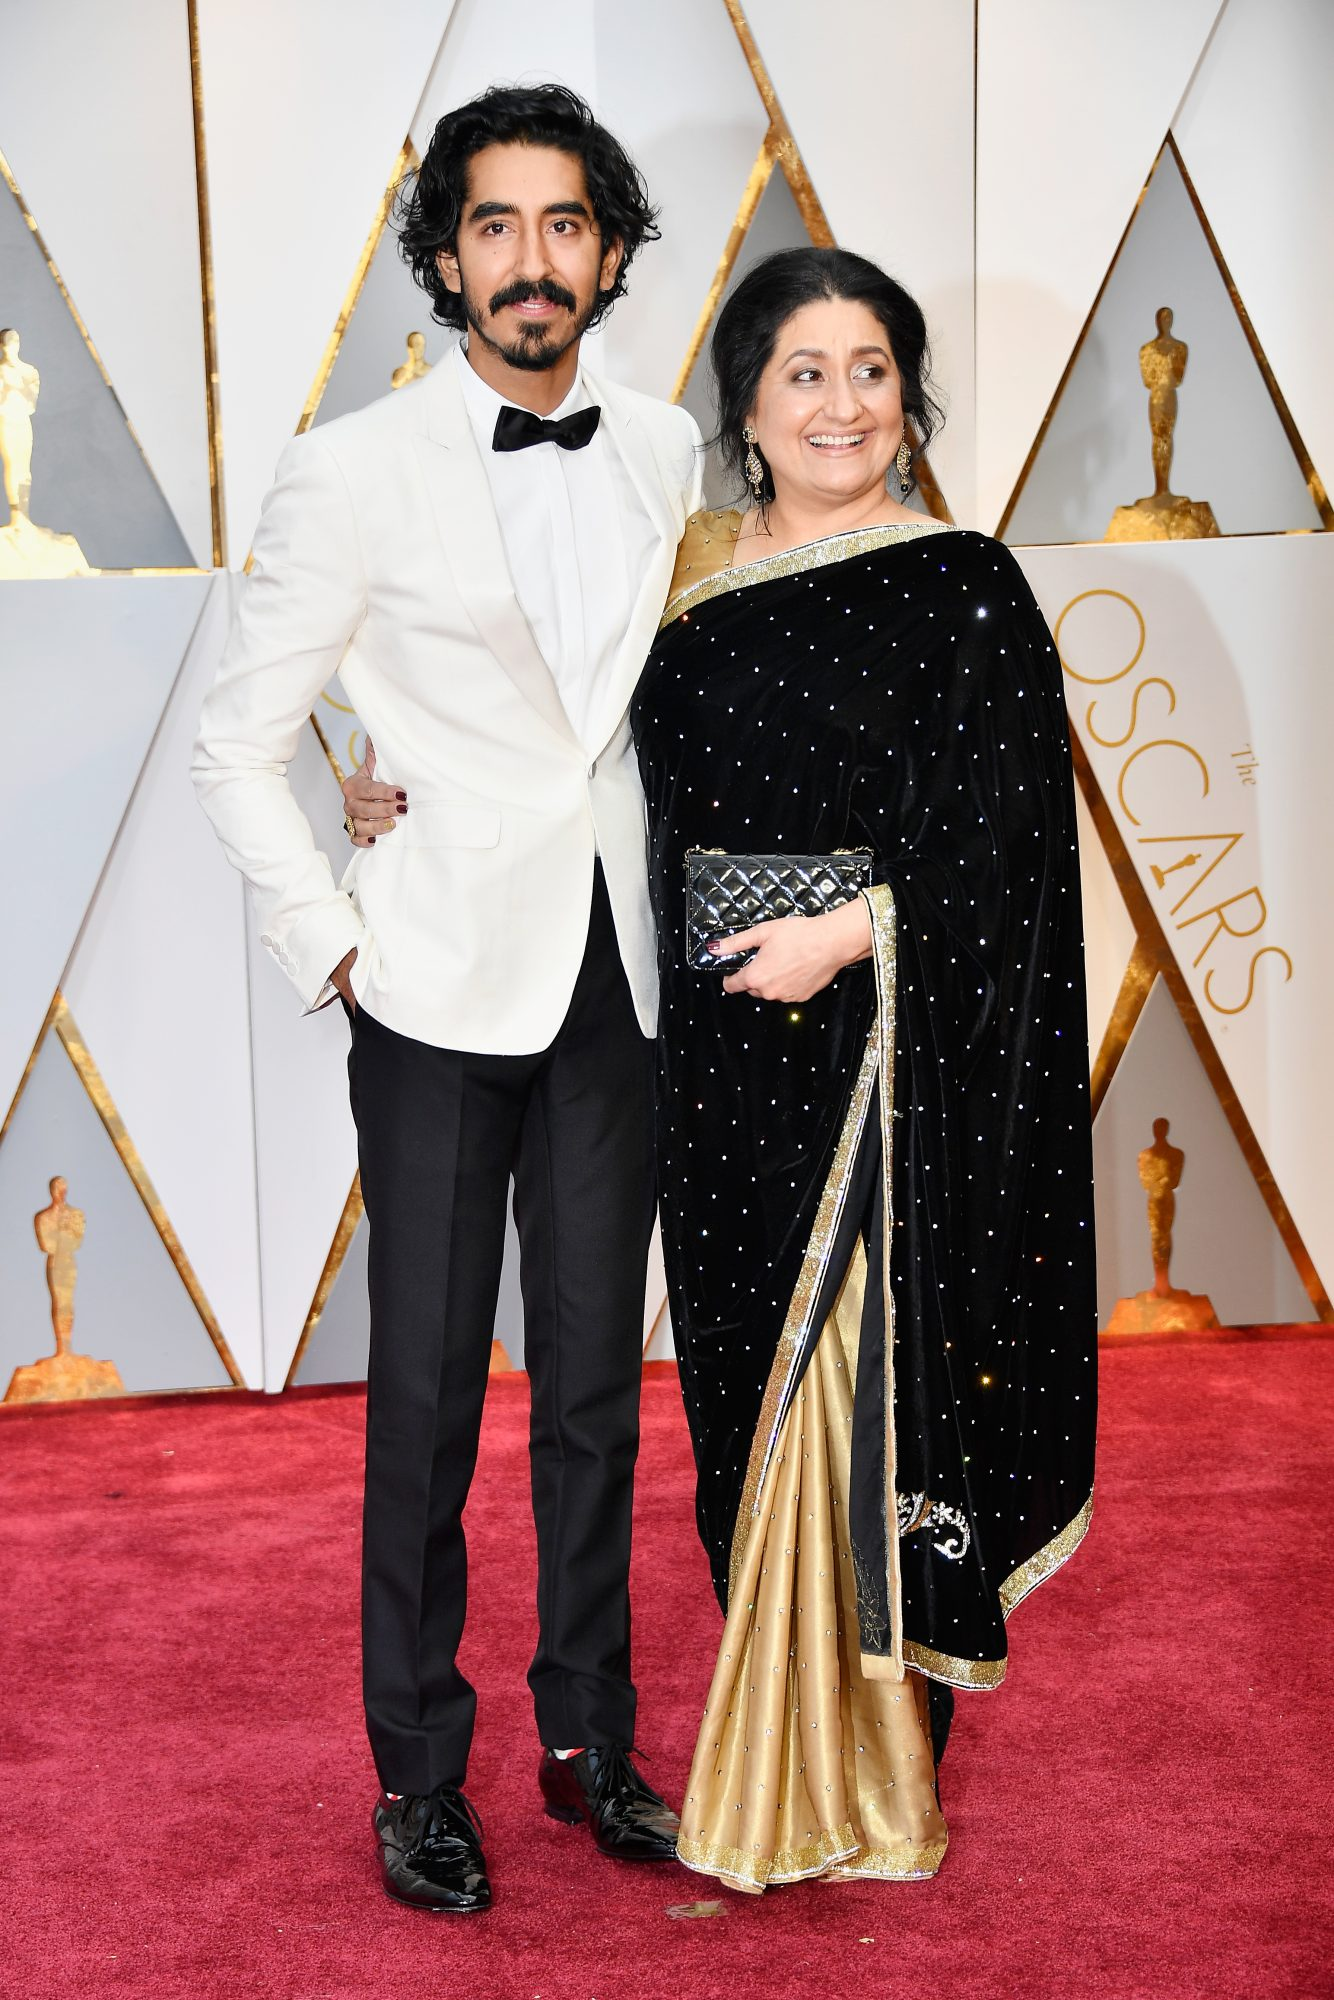 HOLLYWOOD, CA - FEBRUARY 26:  Actor Dev Patel (L) and Anita Patel attend the 89th Annual Academy Awards at Hollywood & Highland Center on February 26, 2017 in Hollywood, California.  (Photo by Frazer Harrison/Getty Images)